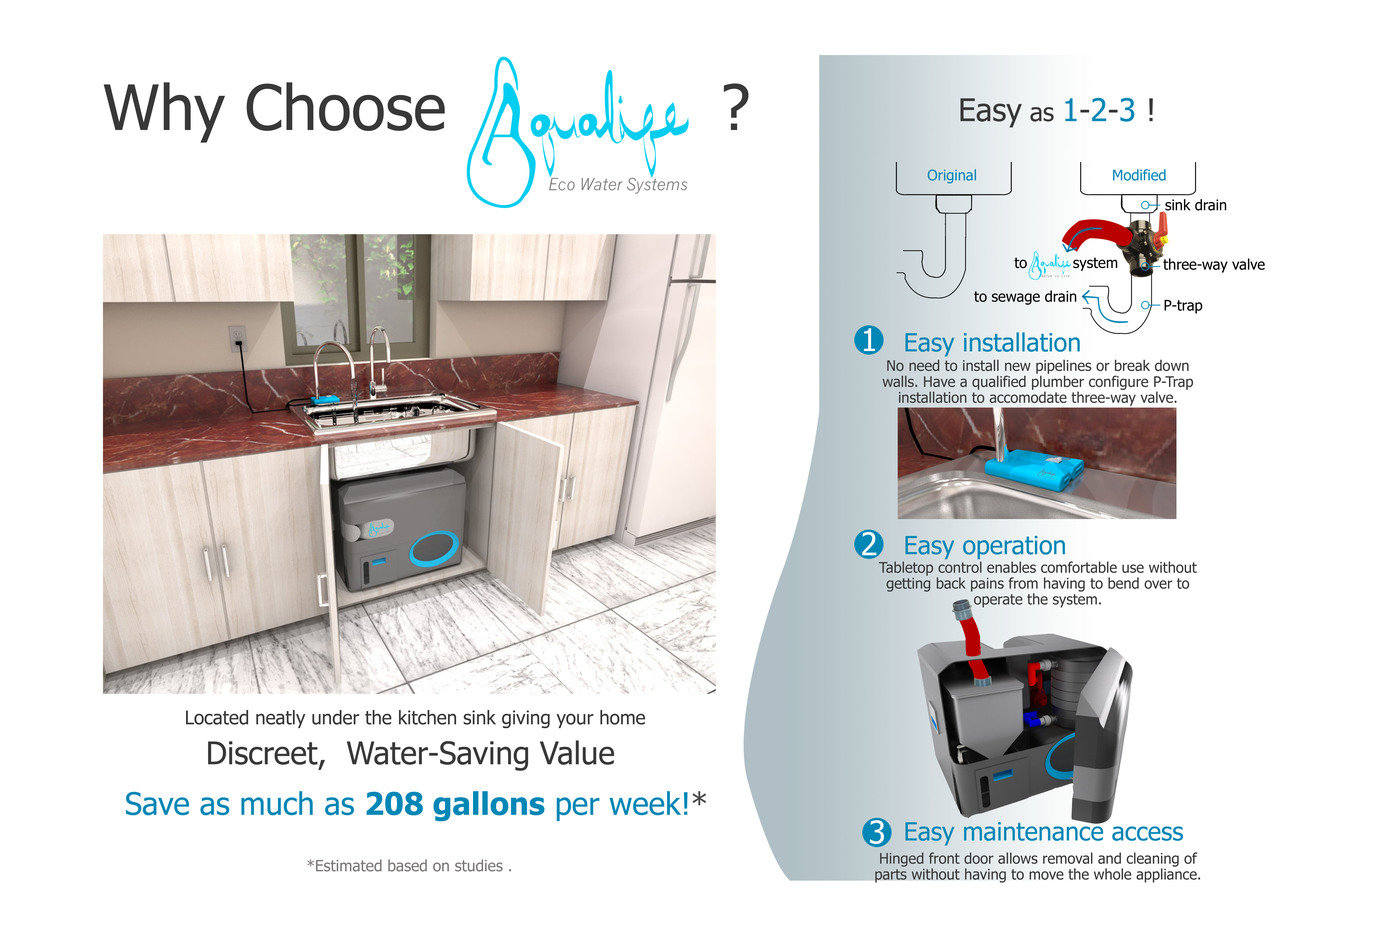 Concept Greywater Recycling For Kitchen Sink By Alexis Lizares At Coroflot Com